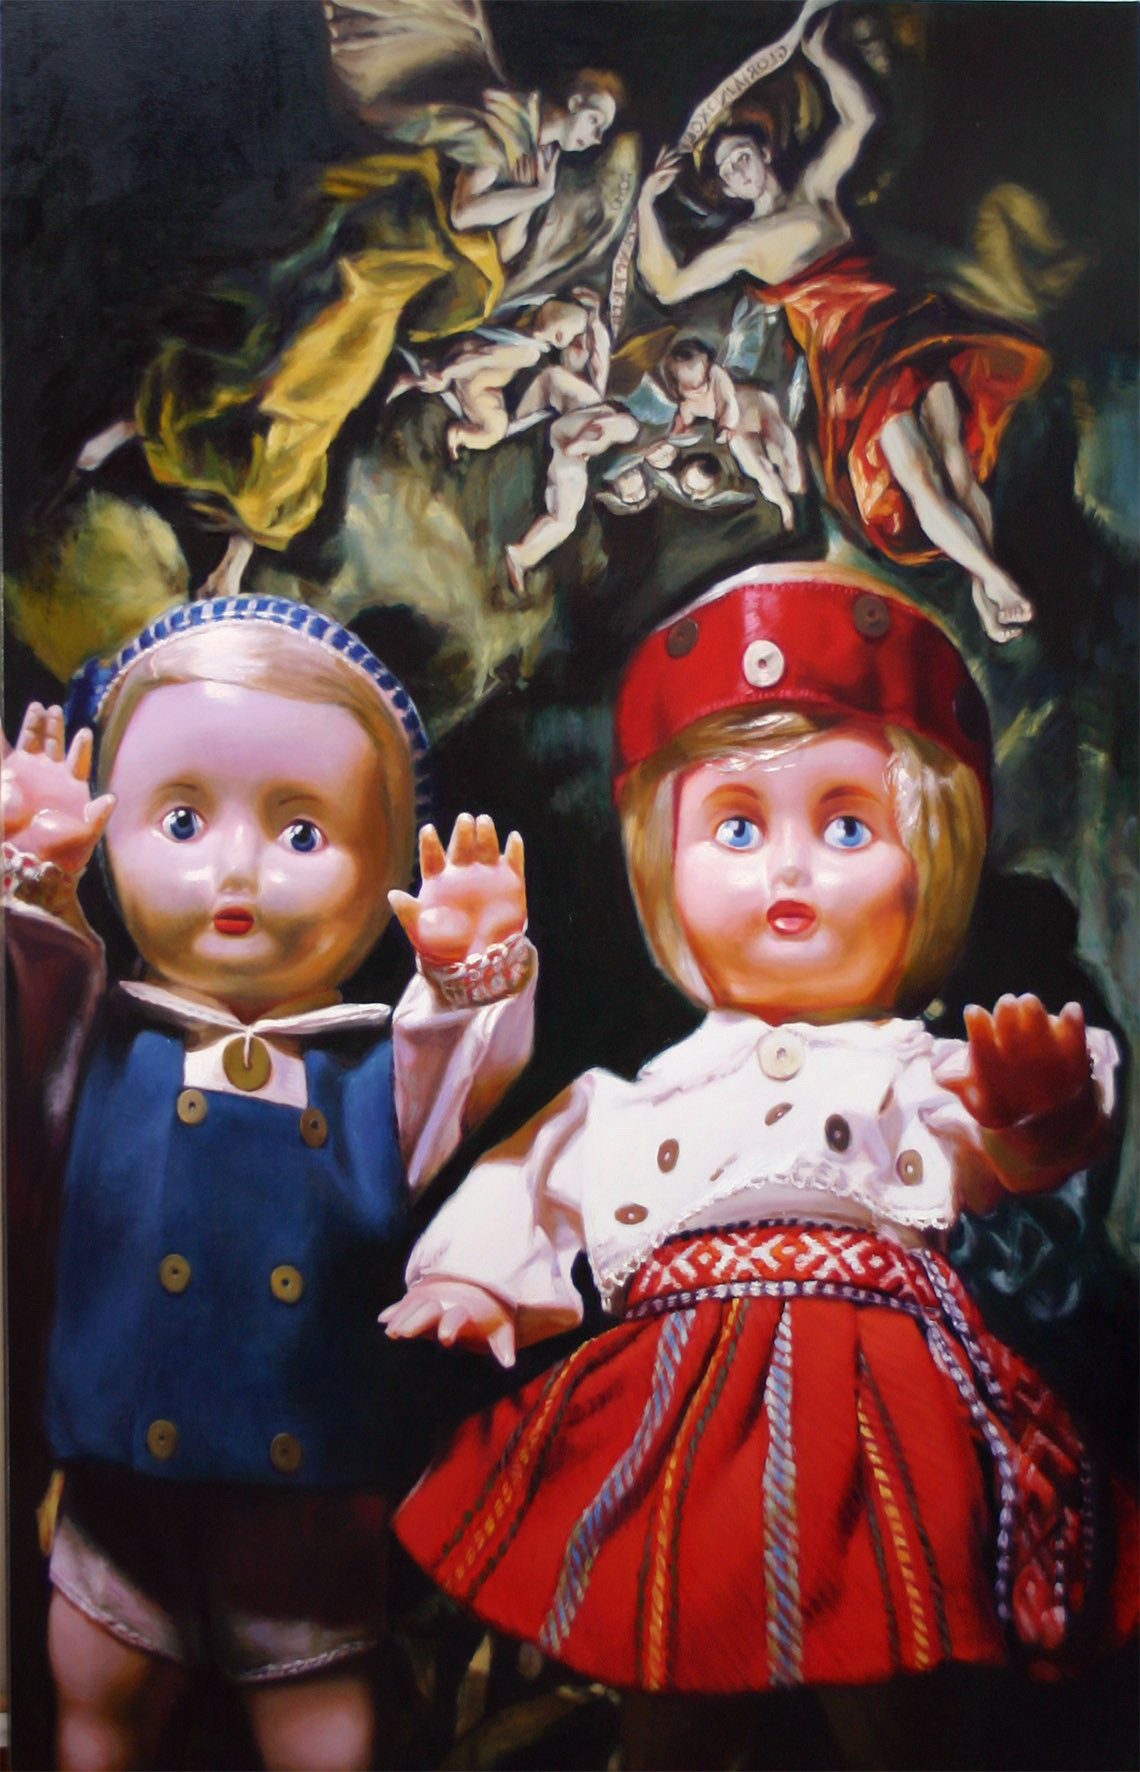 Aerfeldt Wanda and Wilhelm get up to childish tricks in the dark 213 x 137 cm, oil on linen, 2004.jpg